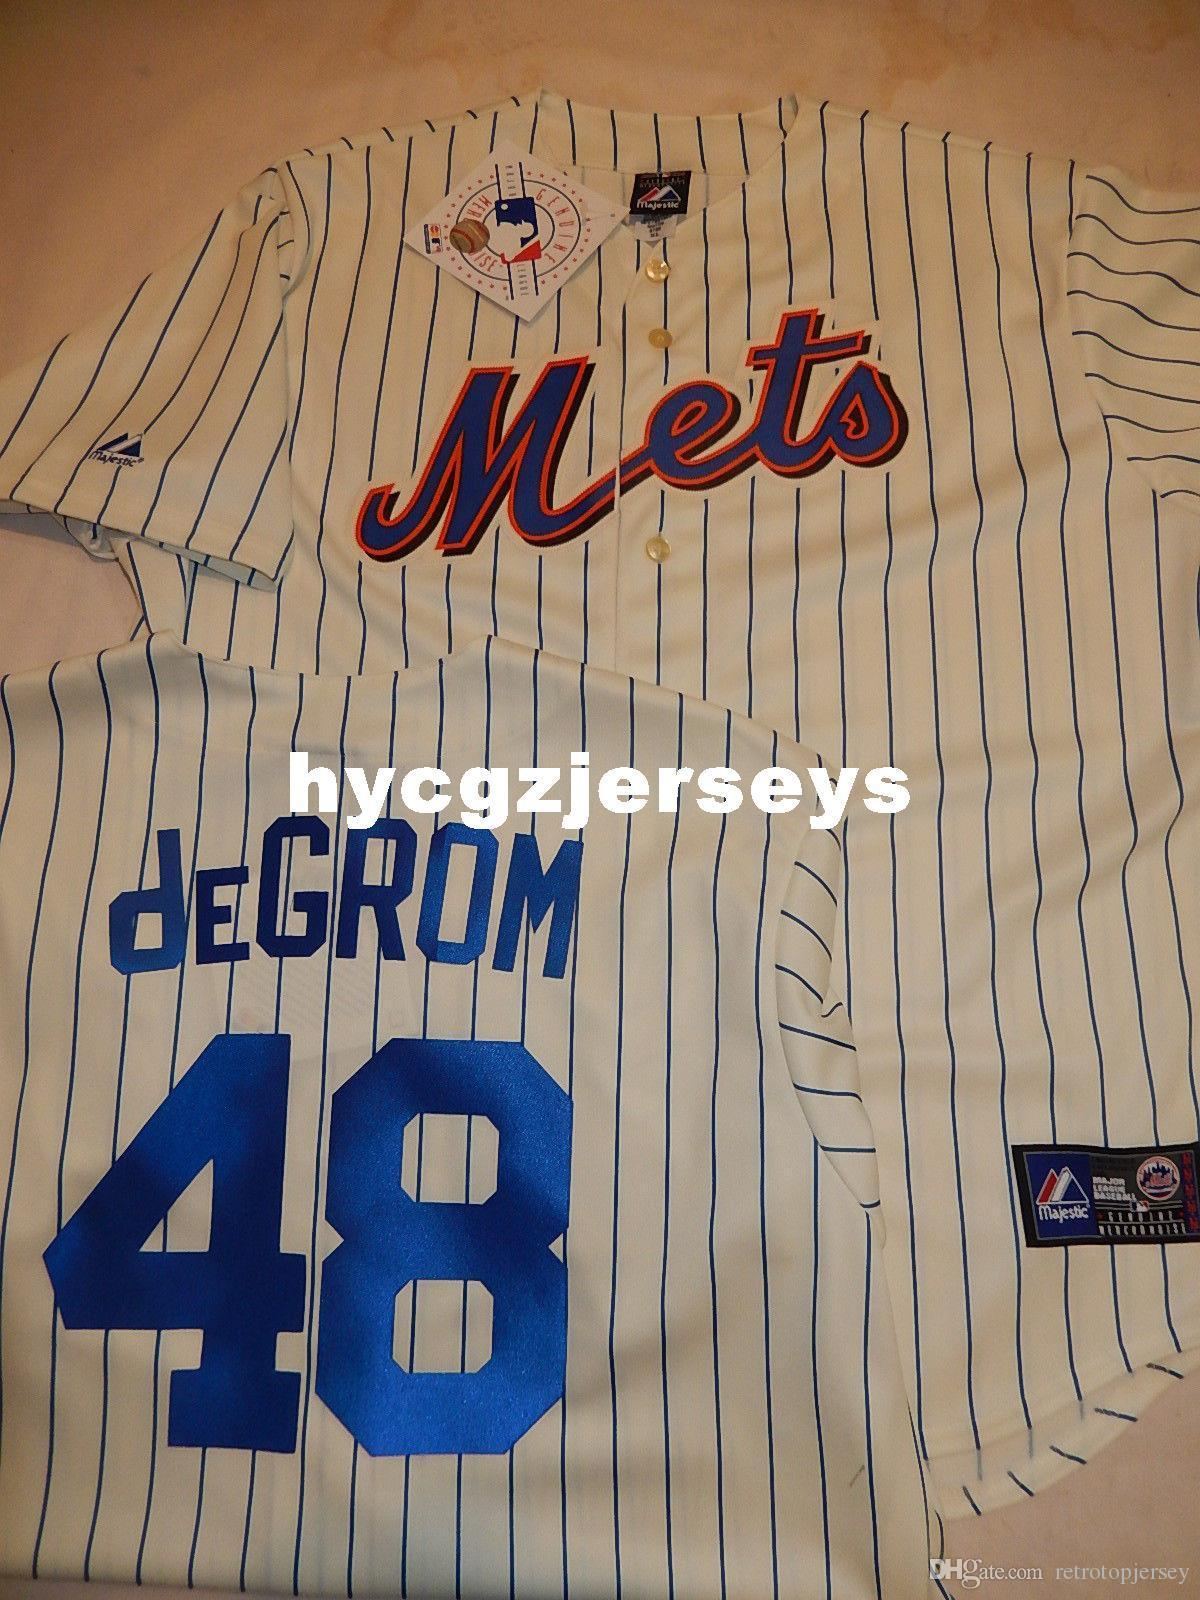 Cheap baseball Mens Top NY #48 JACOB DeGROM shirt JERSEY CREME NEW Mens stitched jerseys Big And Tall SIZE XS-6XL For sale